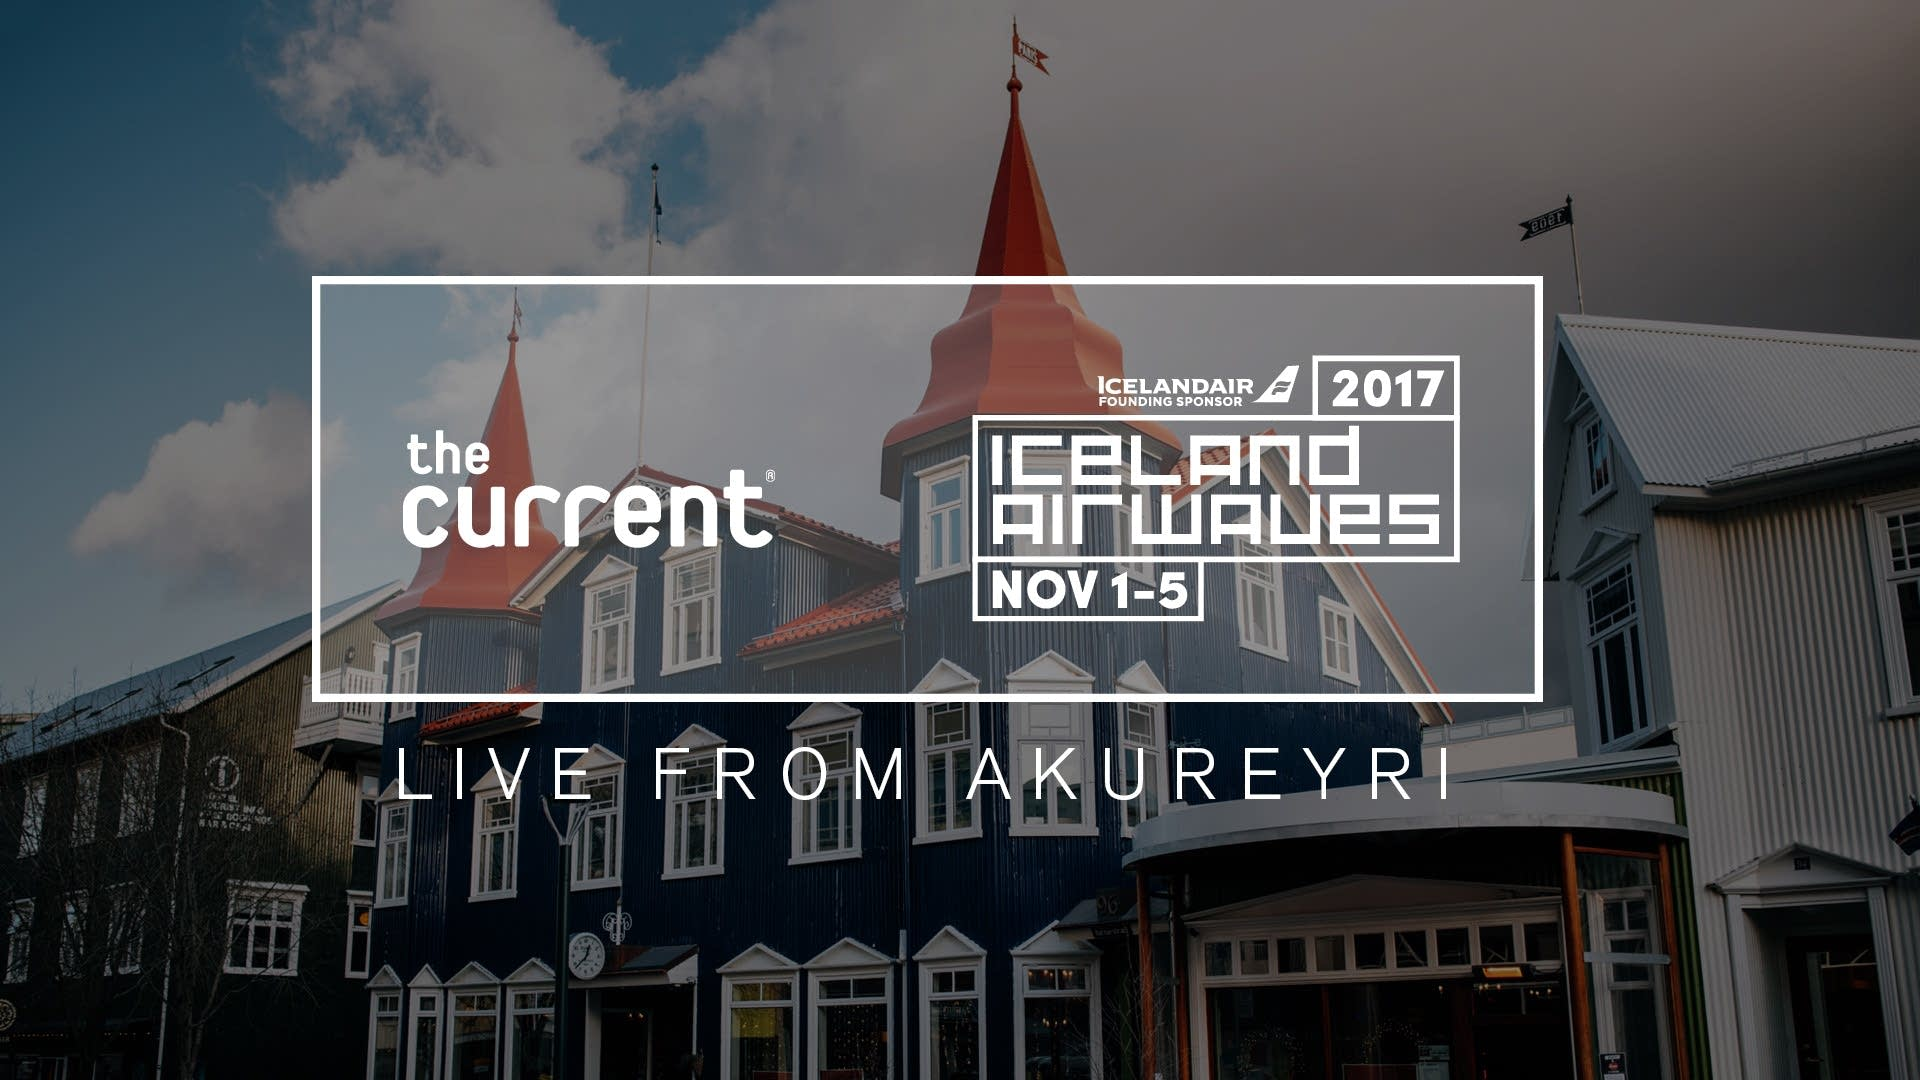 The Current's live broadcast from Akureyri, Iceland